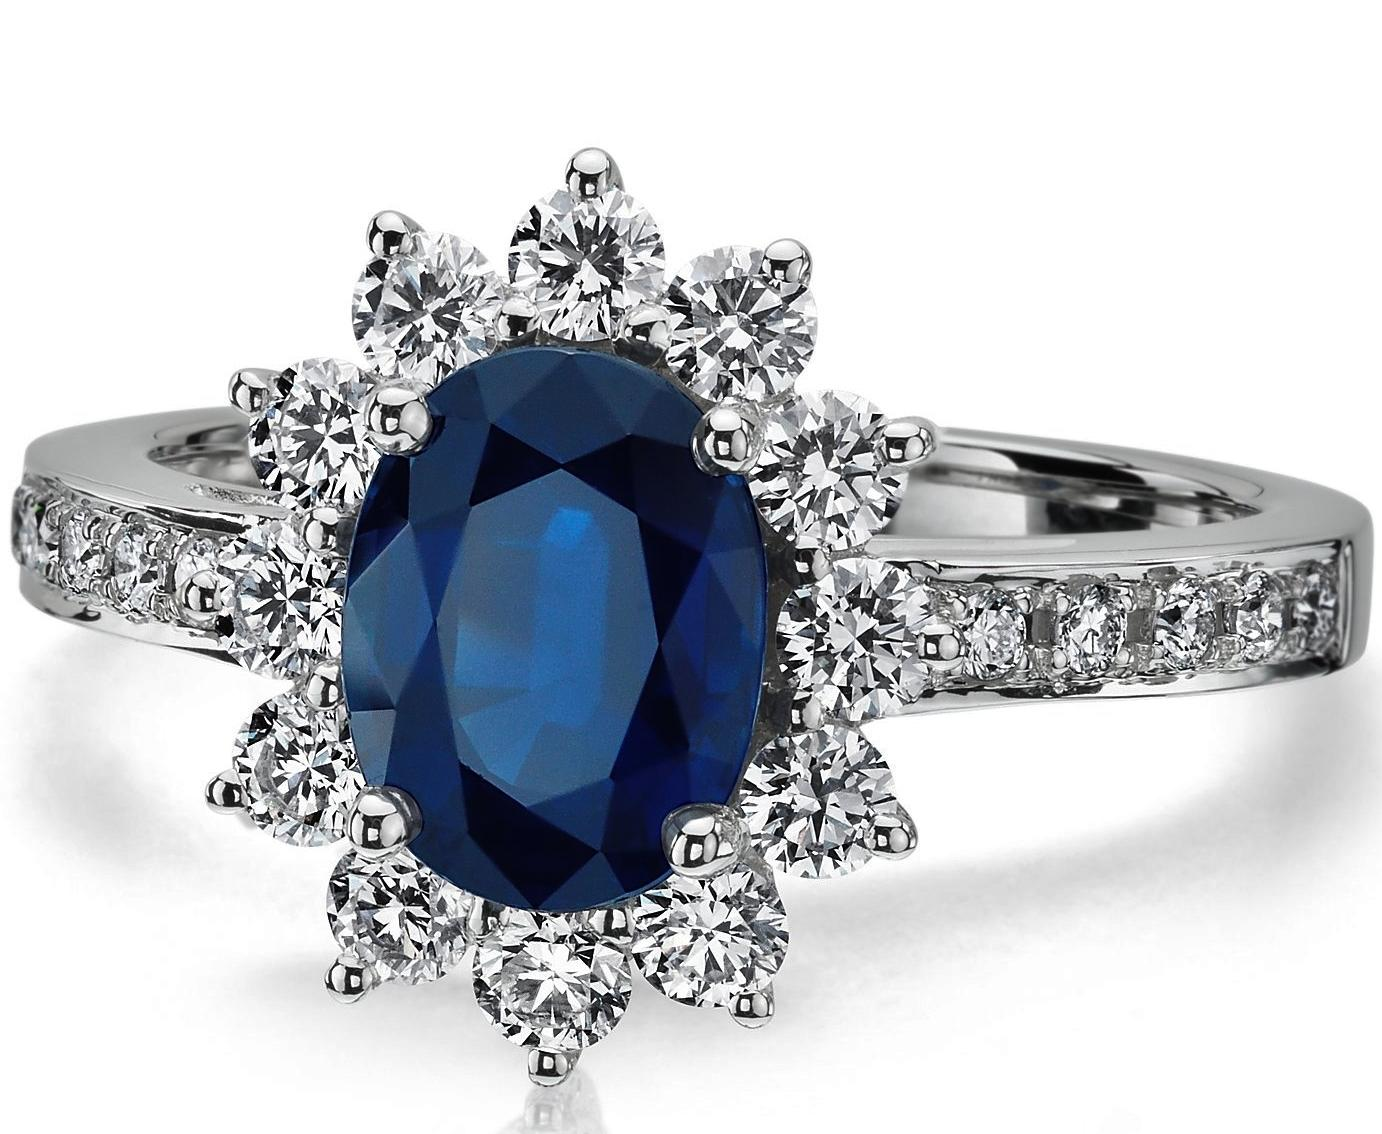 European Engagement Ring Oval Blue Sapphire Ring Diamond Halo In